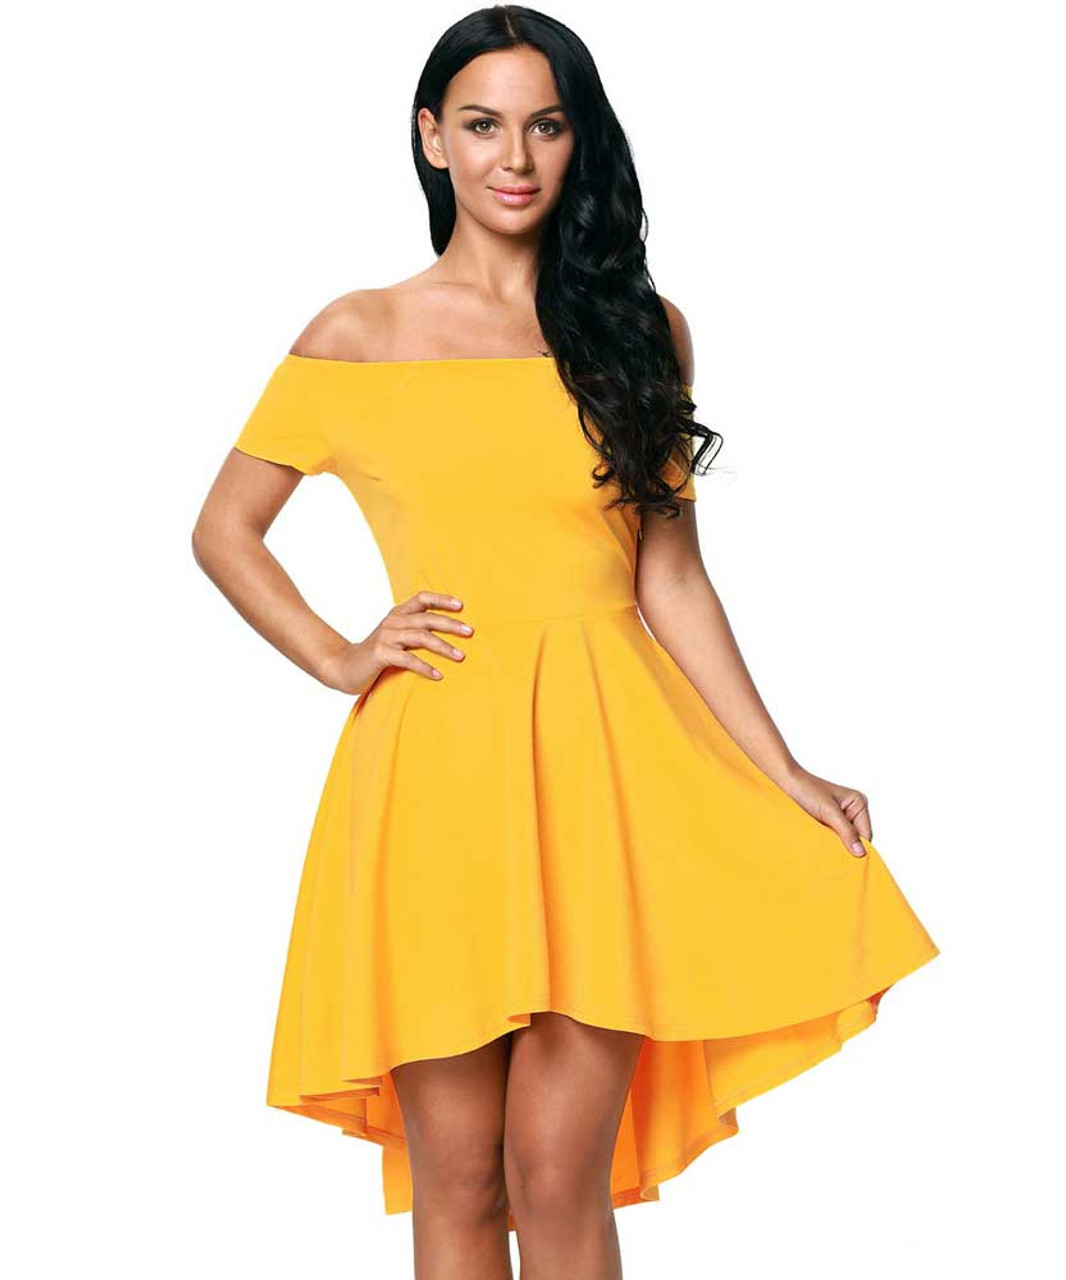 9a59aa105aed1 Yellow short front long back off the shoulder mini dress